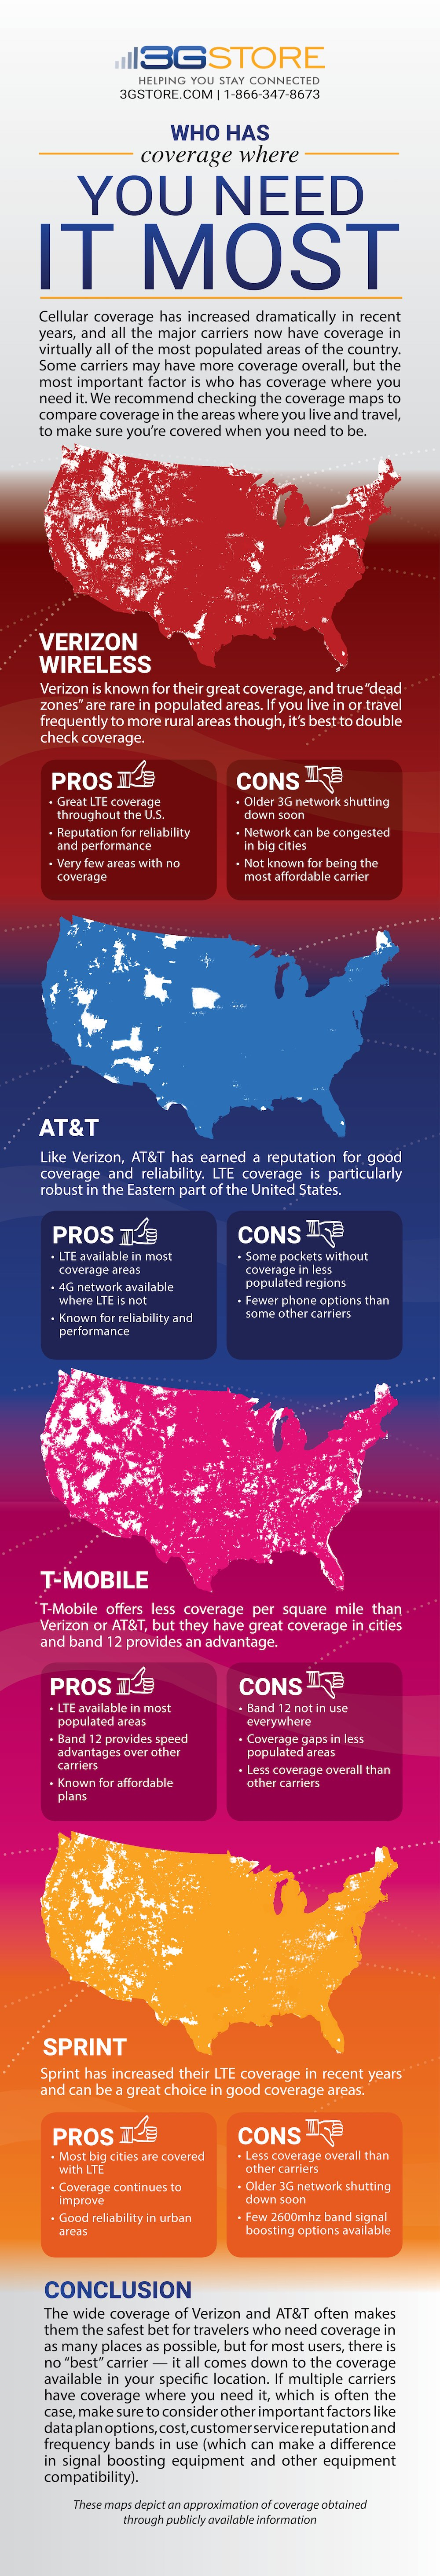 3G/4G Coverage Maps - Verizon, At&t, T-Mobile And Sprint - At&t Coverage Map Florida